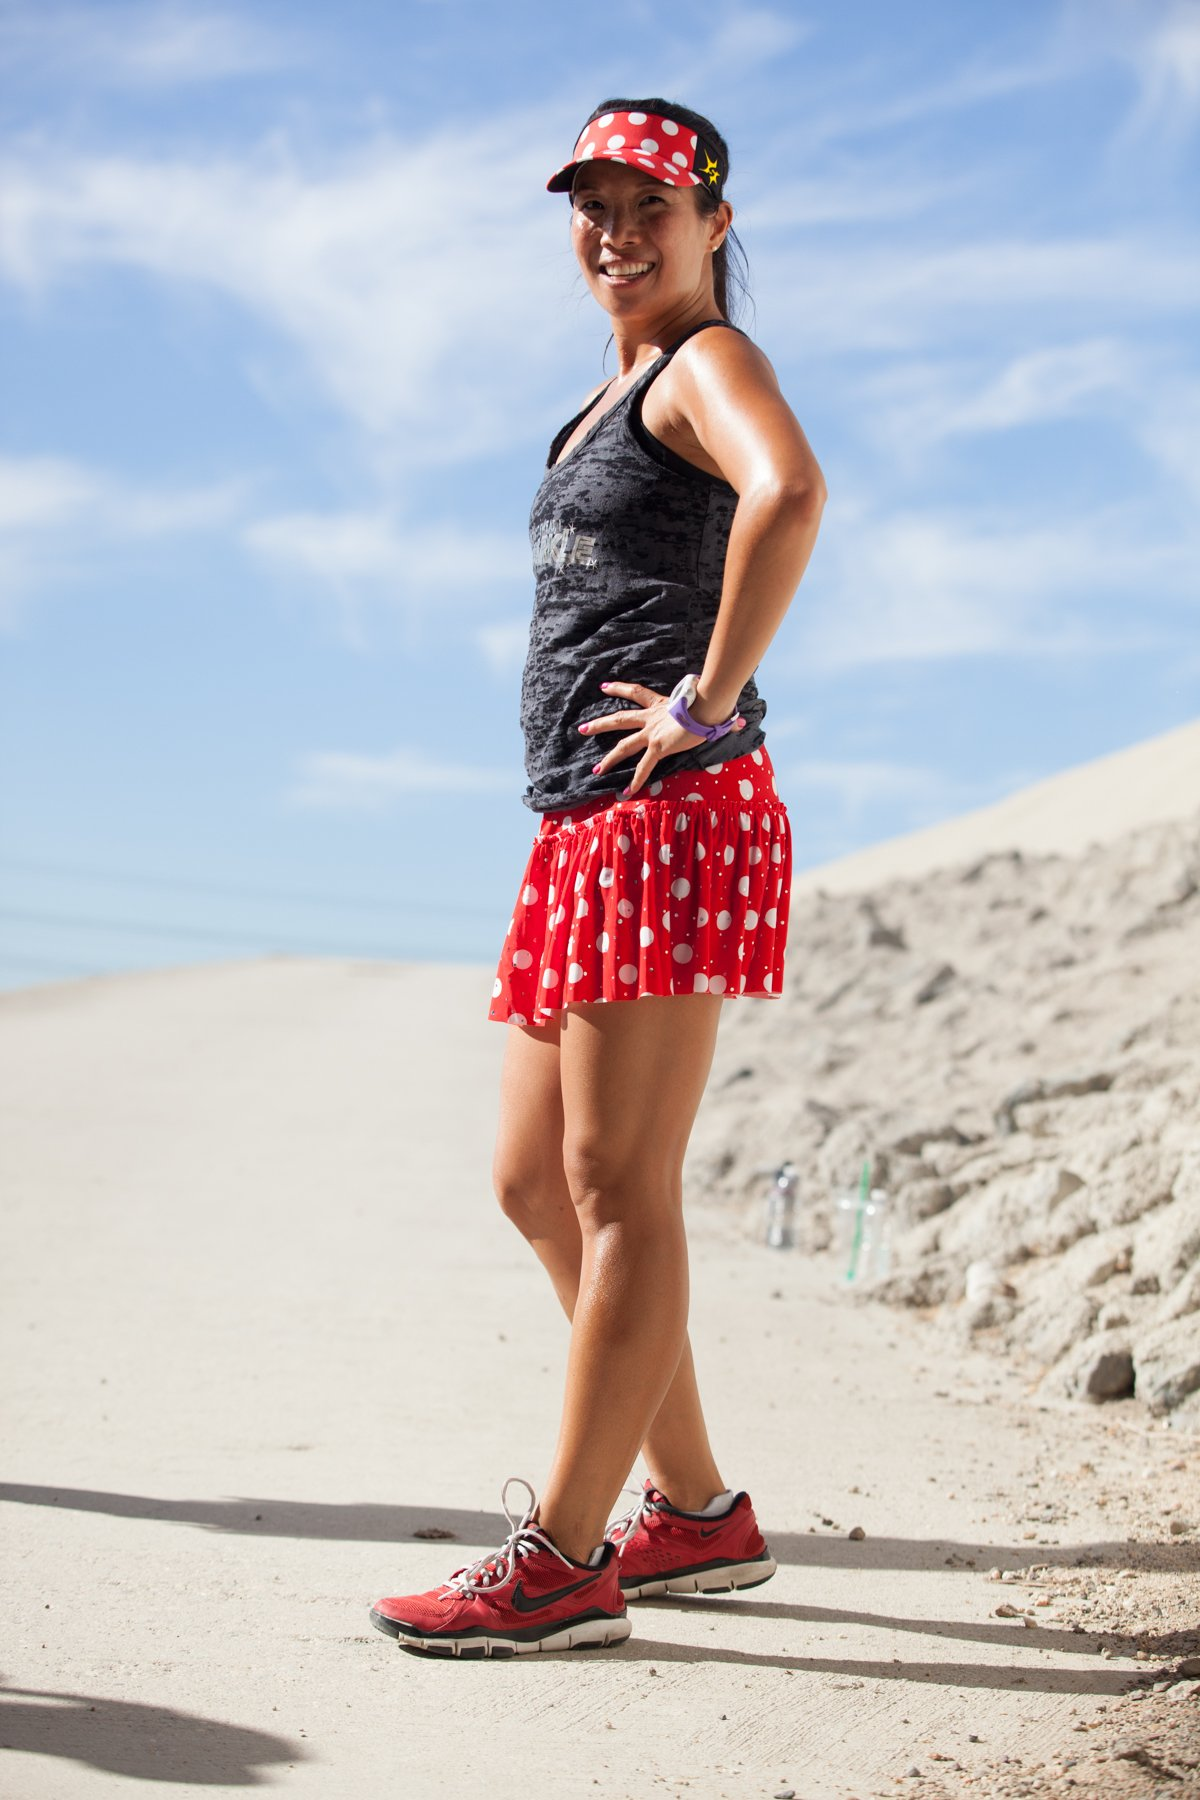 Red with White Polka Dots Sparkle Running Skirt S by Sparkle Athletic